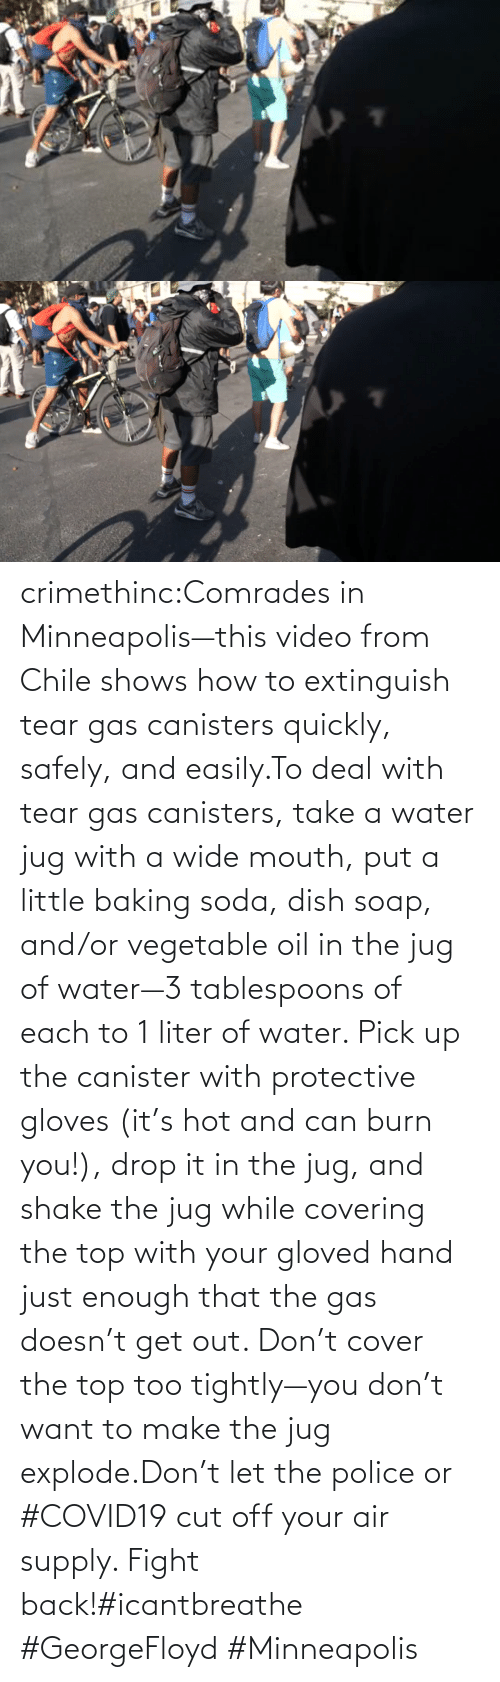 Water: crimethinc:Comrades in Minneapolis—this video from Chile shows how to extinguish tear gas canisters quickly, safely, and easily.To deal with tear gas canisters, take a water jug with a wide mouth, put a little baking soda, dish soap, and/or vegetable oil in the jug of water—3 tablespoons of each to 1 liter of water. Pick up the canister with protective gloves (it's hot and can burn you!), drop it in the jug, and shake the jug while covering the top with your gloved hand just enough that the gas doesn't get out. Don't cover the top too tightly—you don't want to make the jug explode.Don't let the police or #COVID19 cut off your air supply. Fight back!#icantbreathe #GeorgeFloyd #Minneapolis